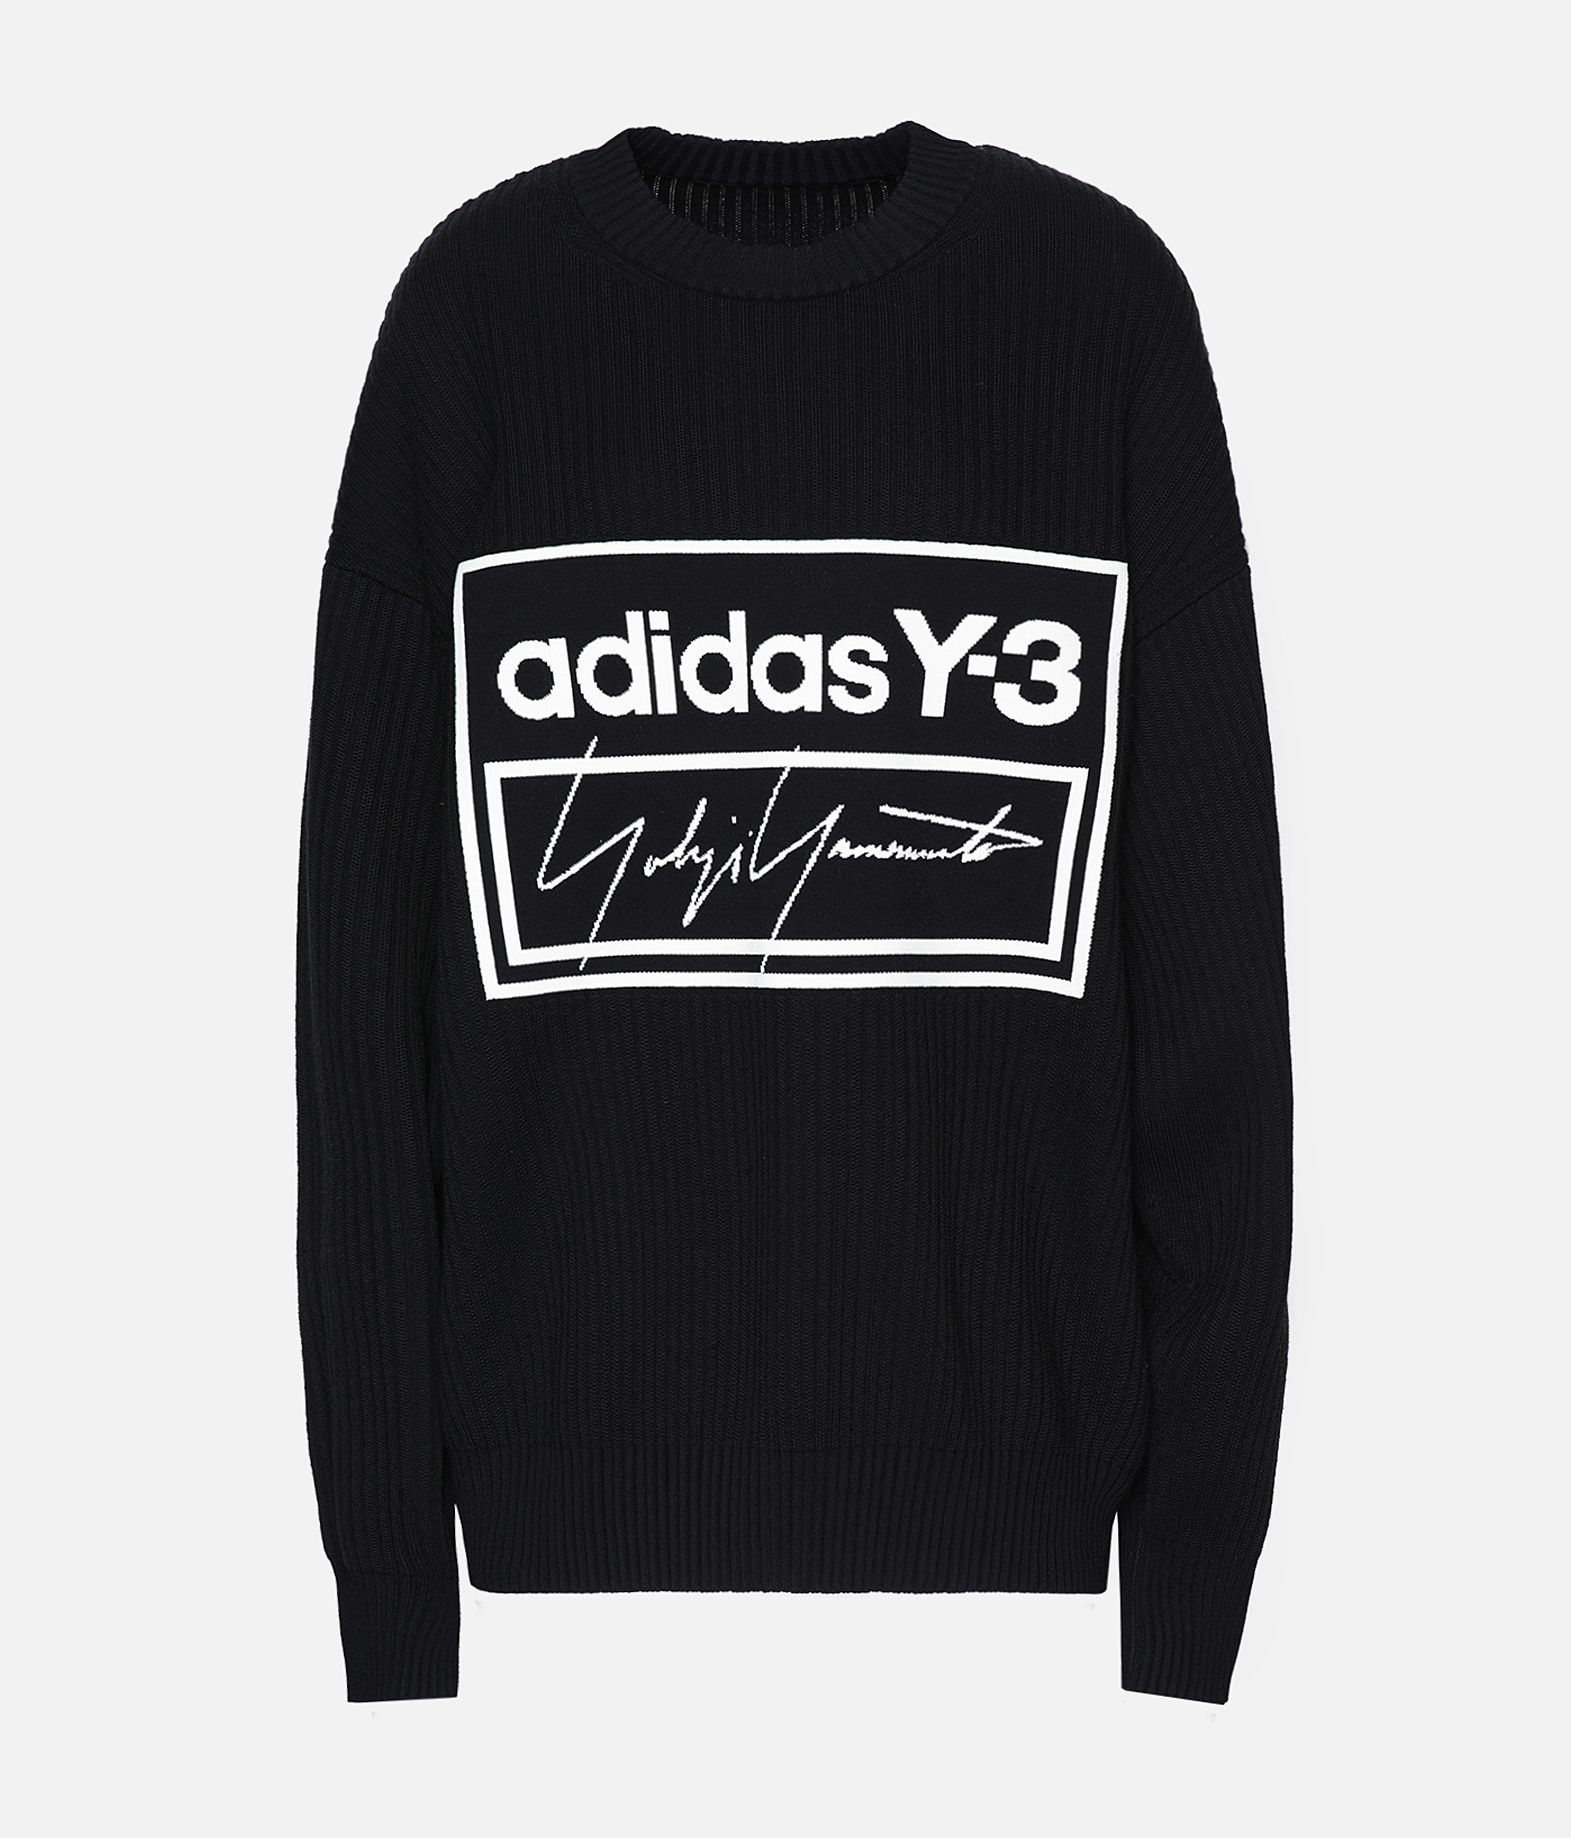 Y-3 Y-3 Tech Knit Crew Sweatshirt Long sleeve jumper Woman f